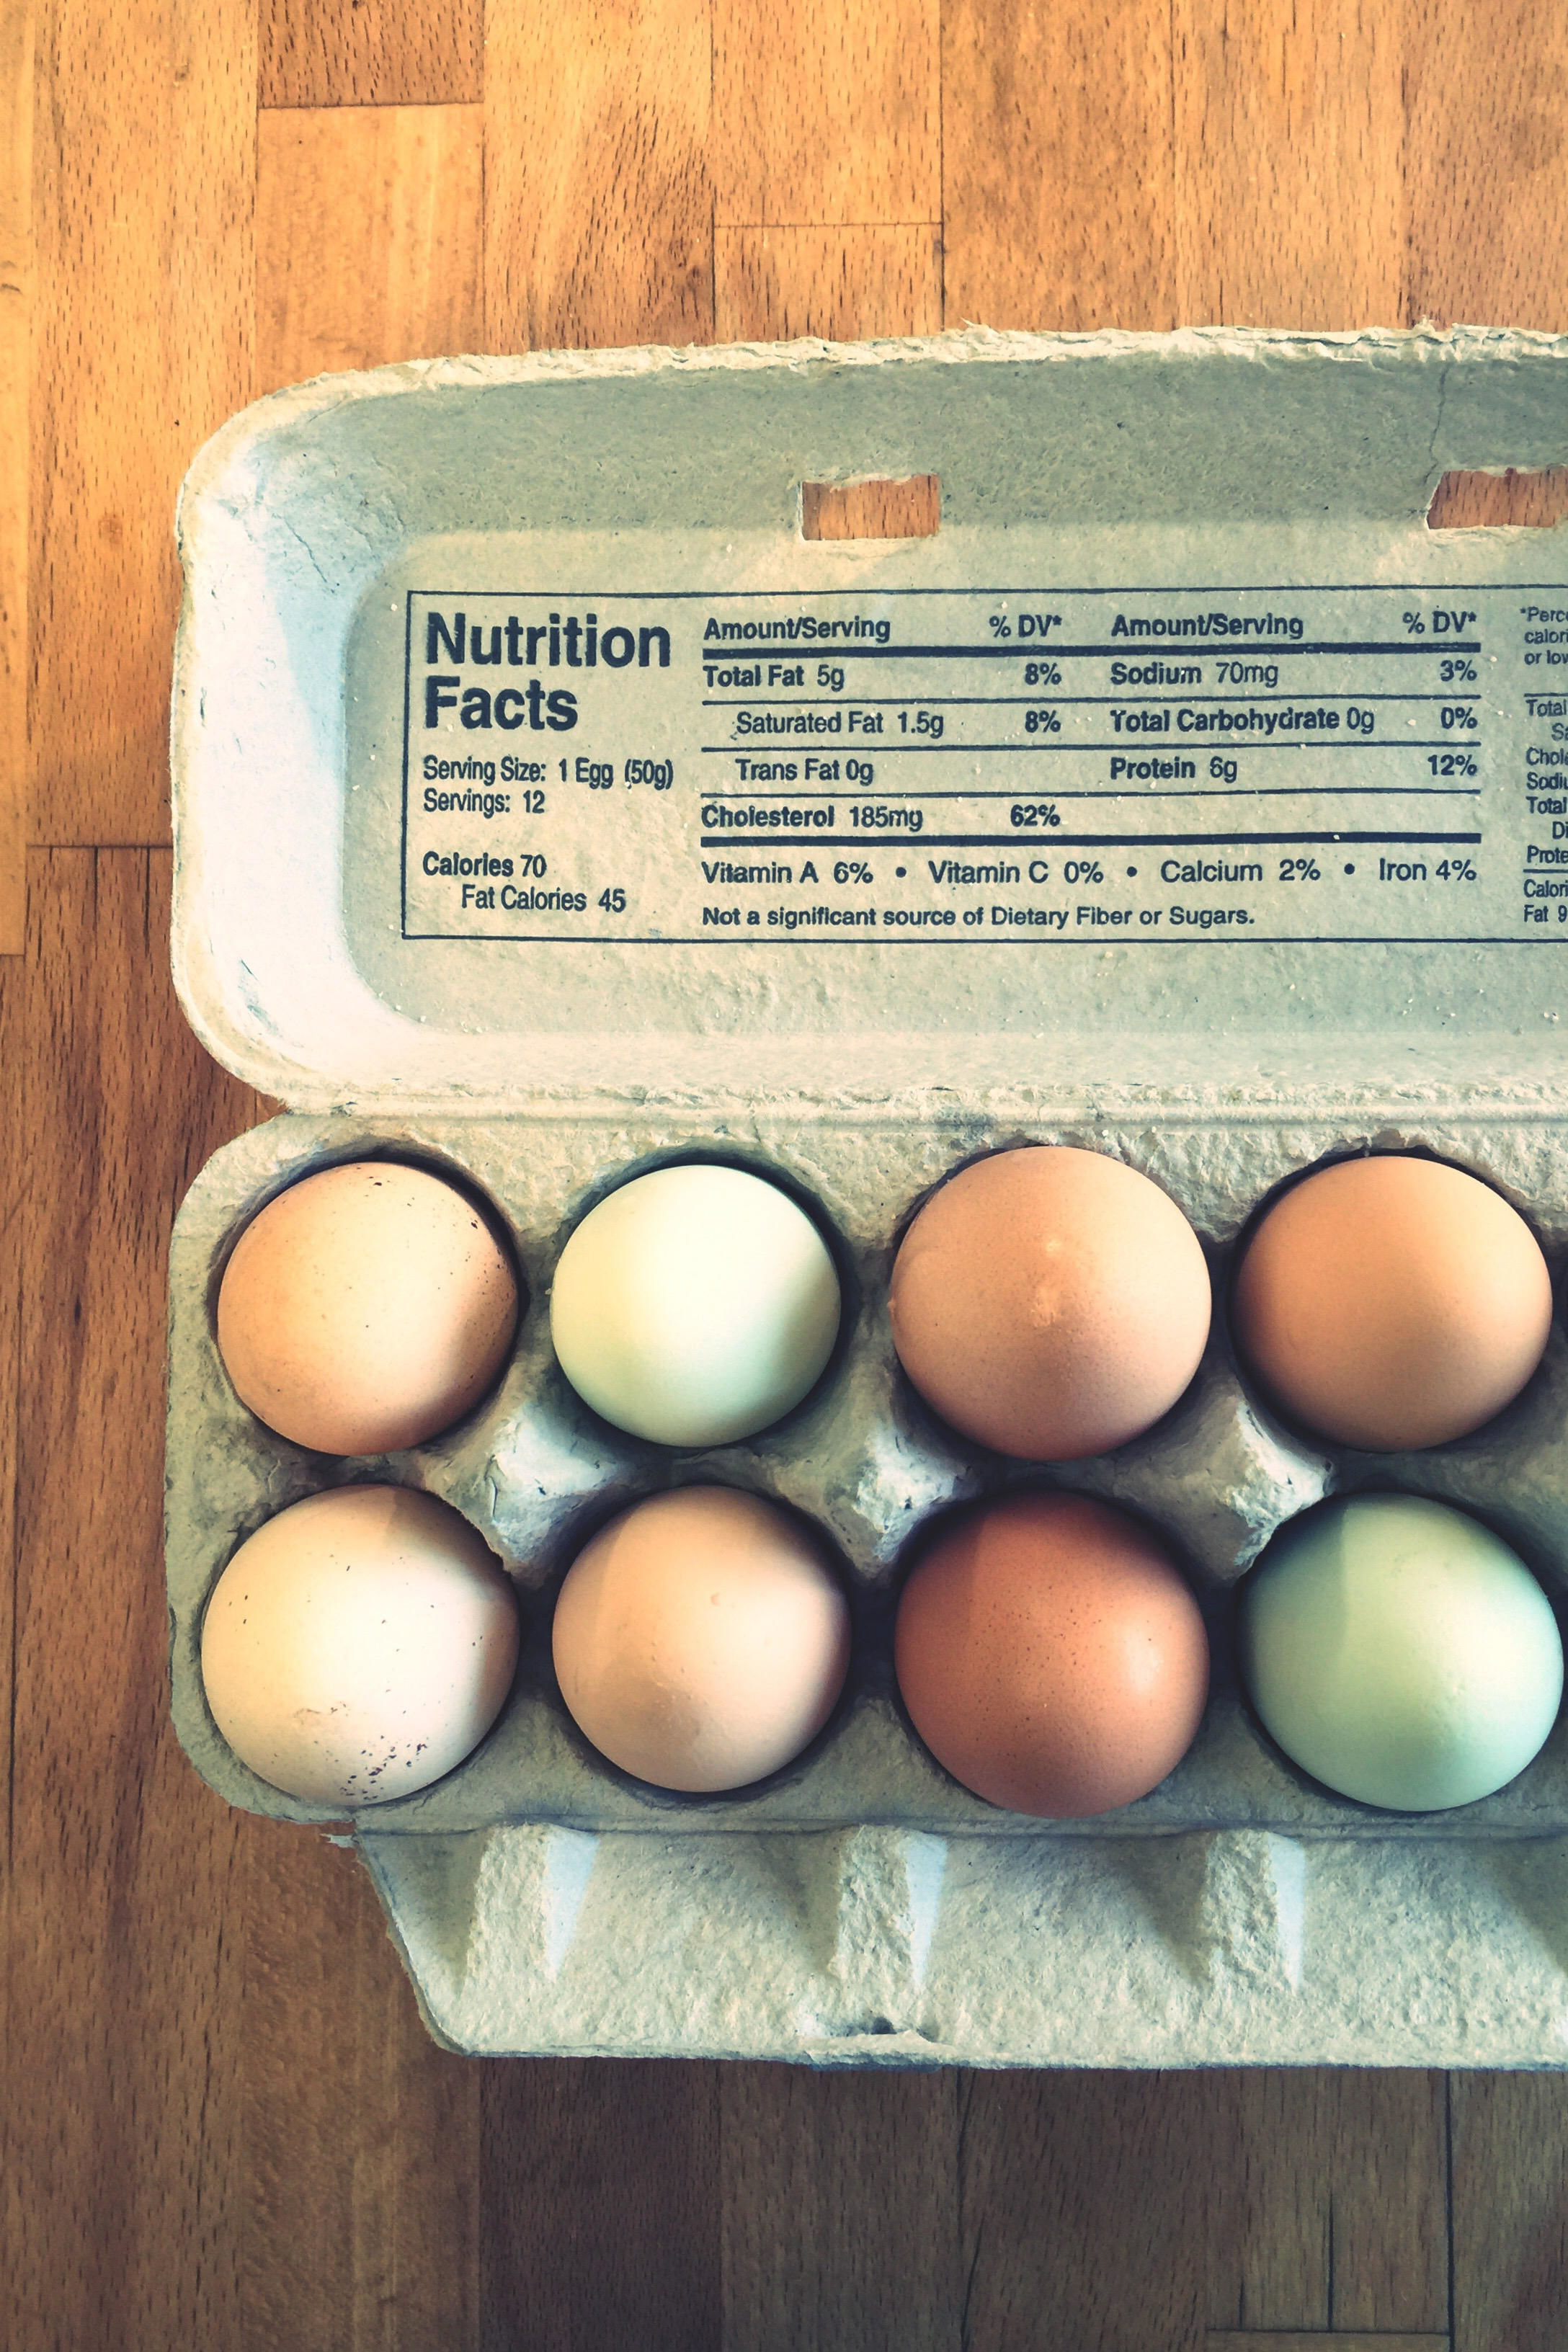 These Are the Egg Carton Labels You Can Ignore—And the Ones That Mean Something